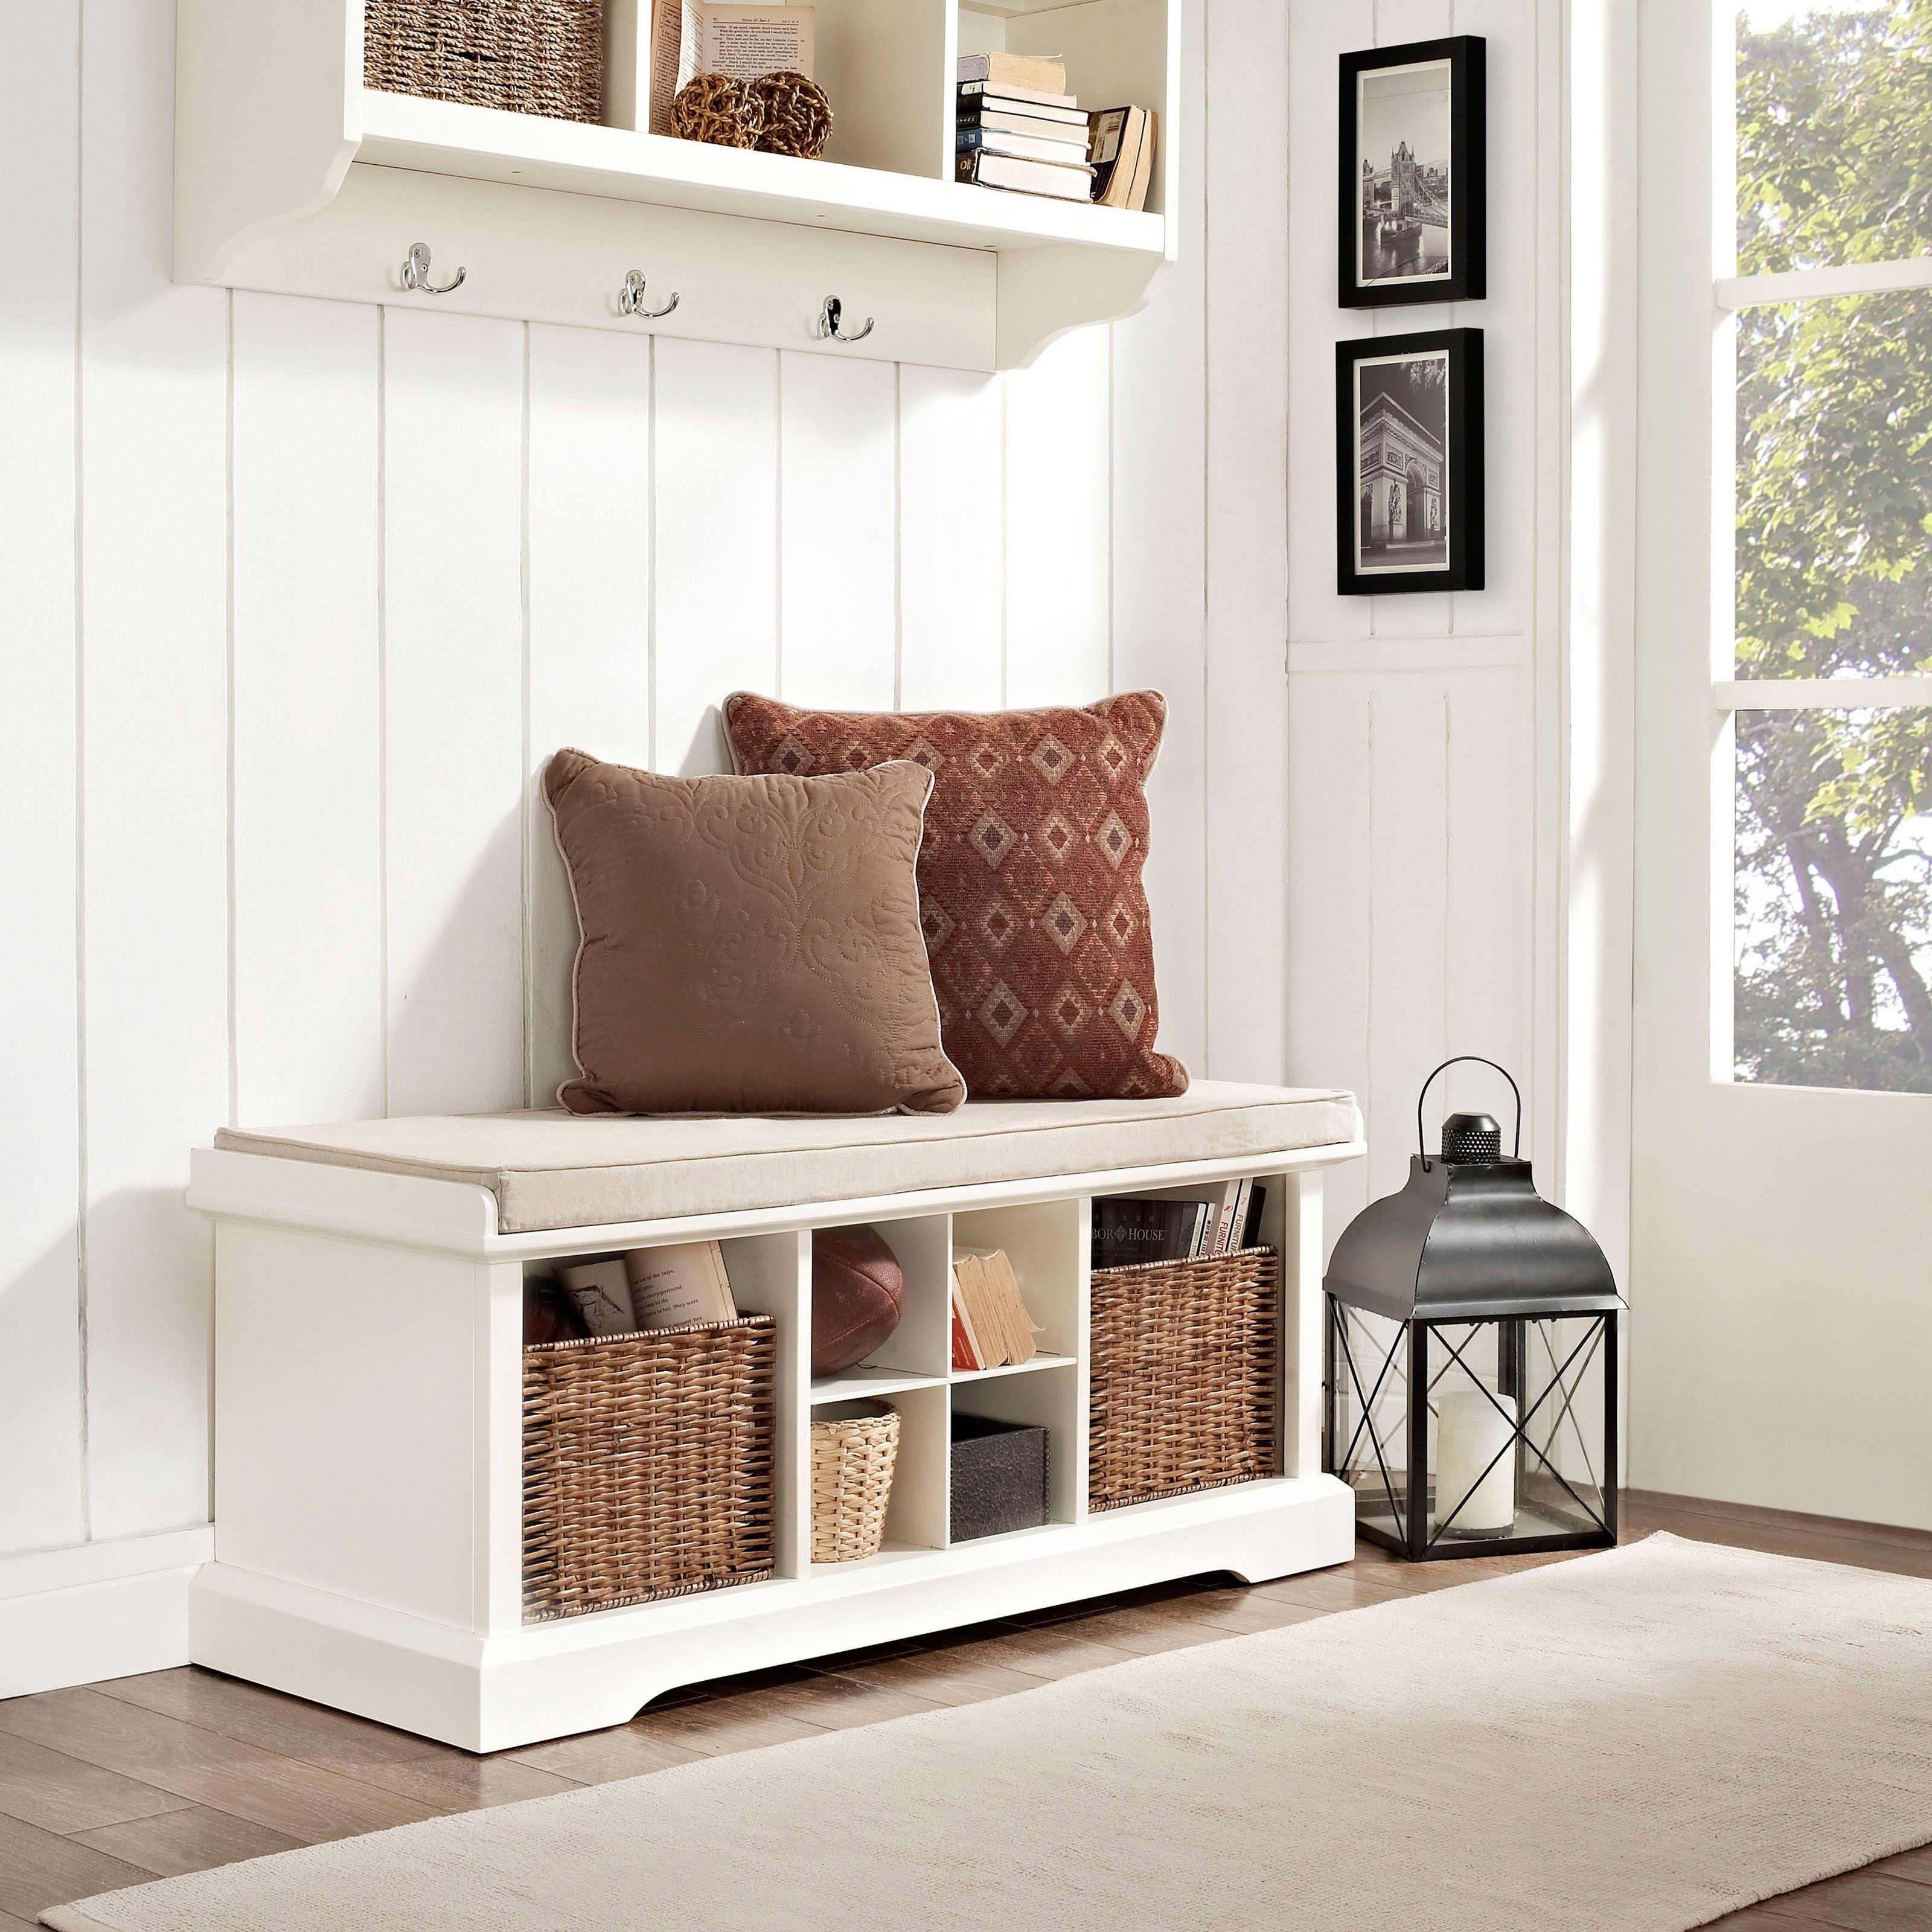 Delightful Modern Entryway Storage Bench White With 2 Pillows